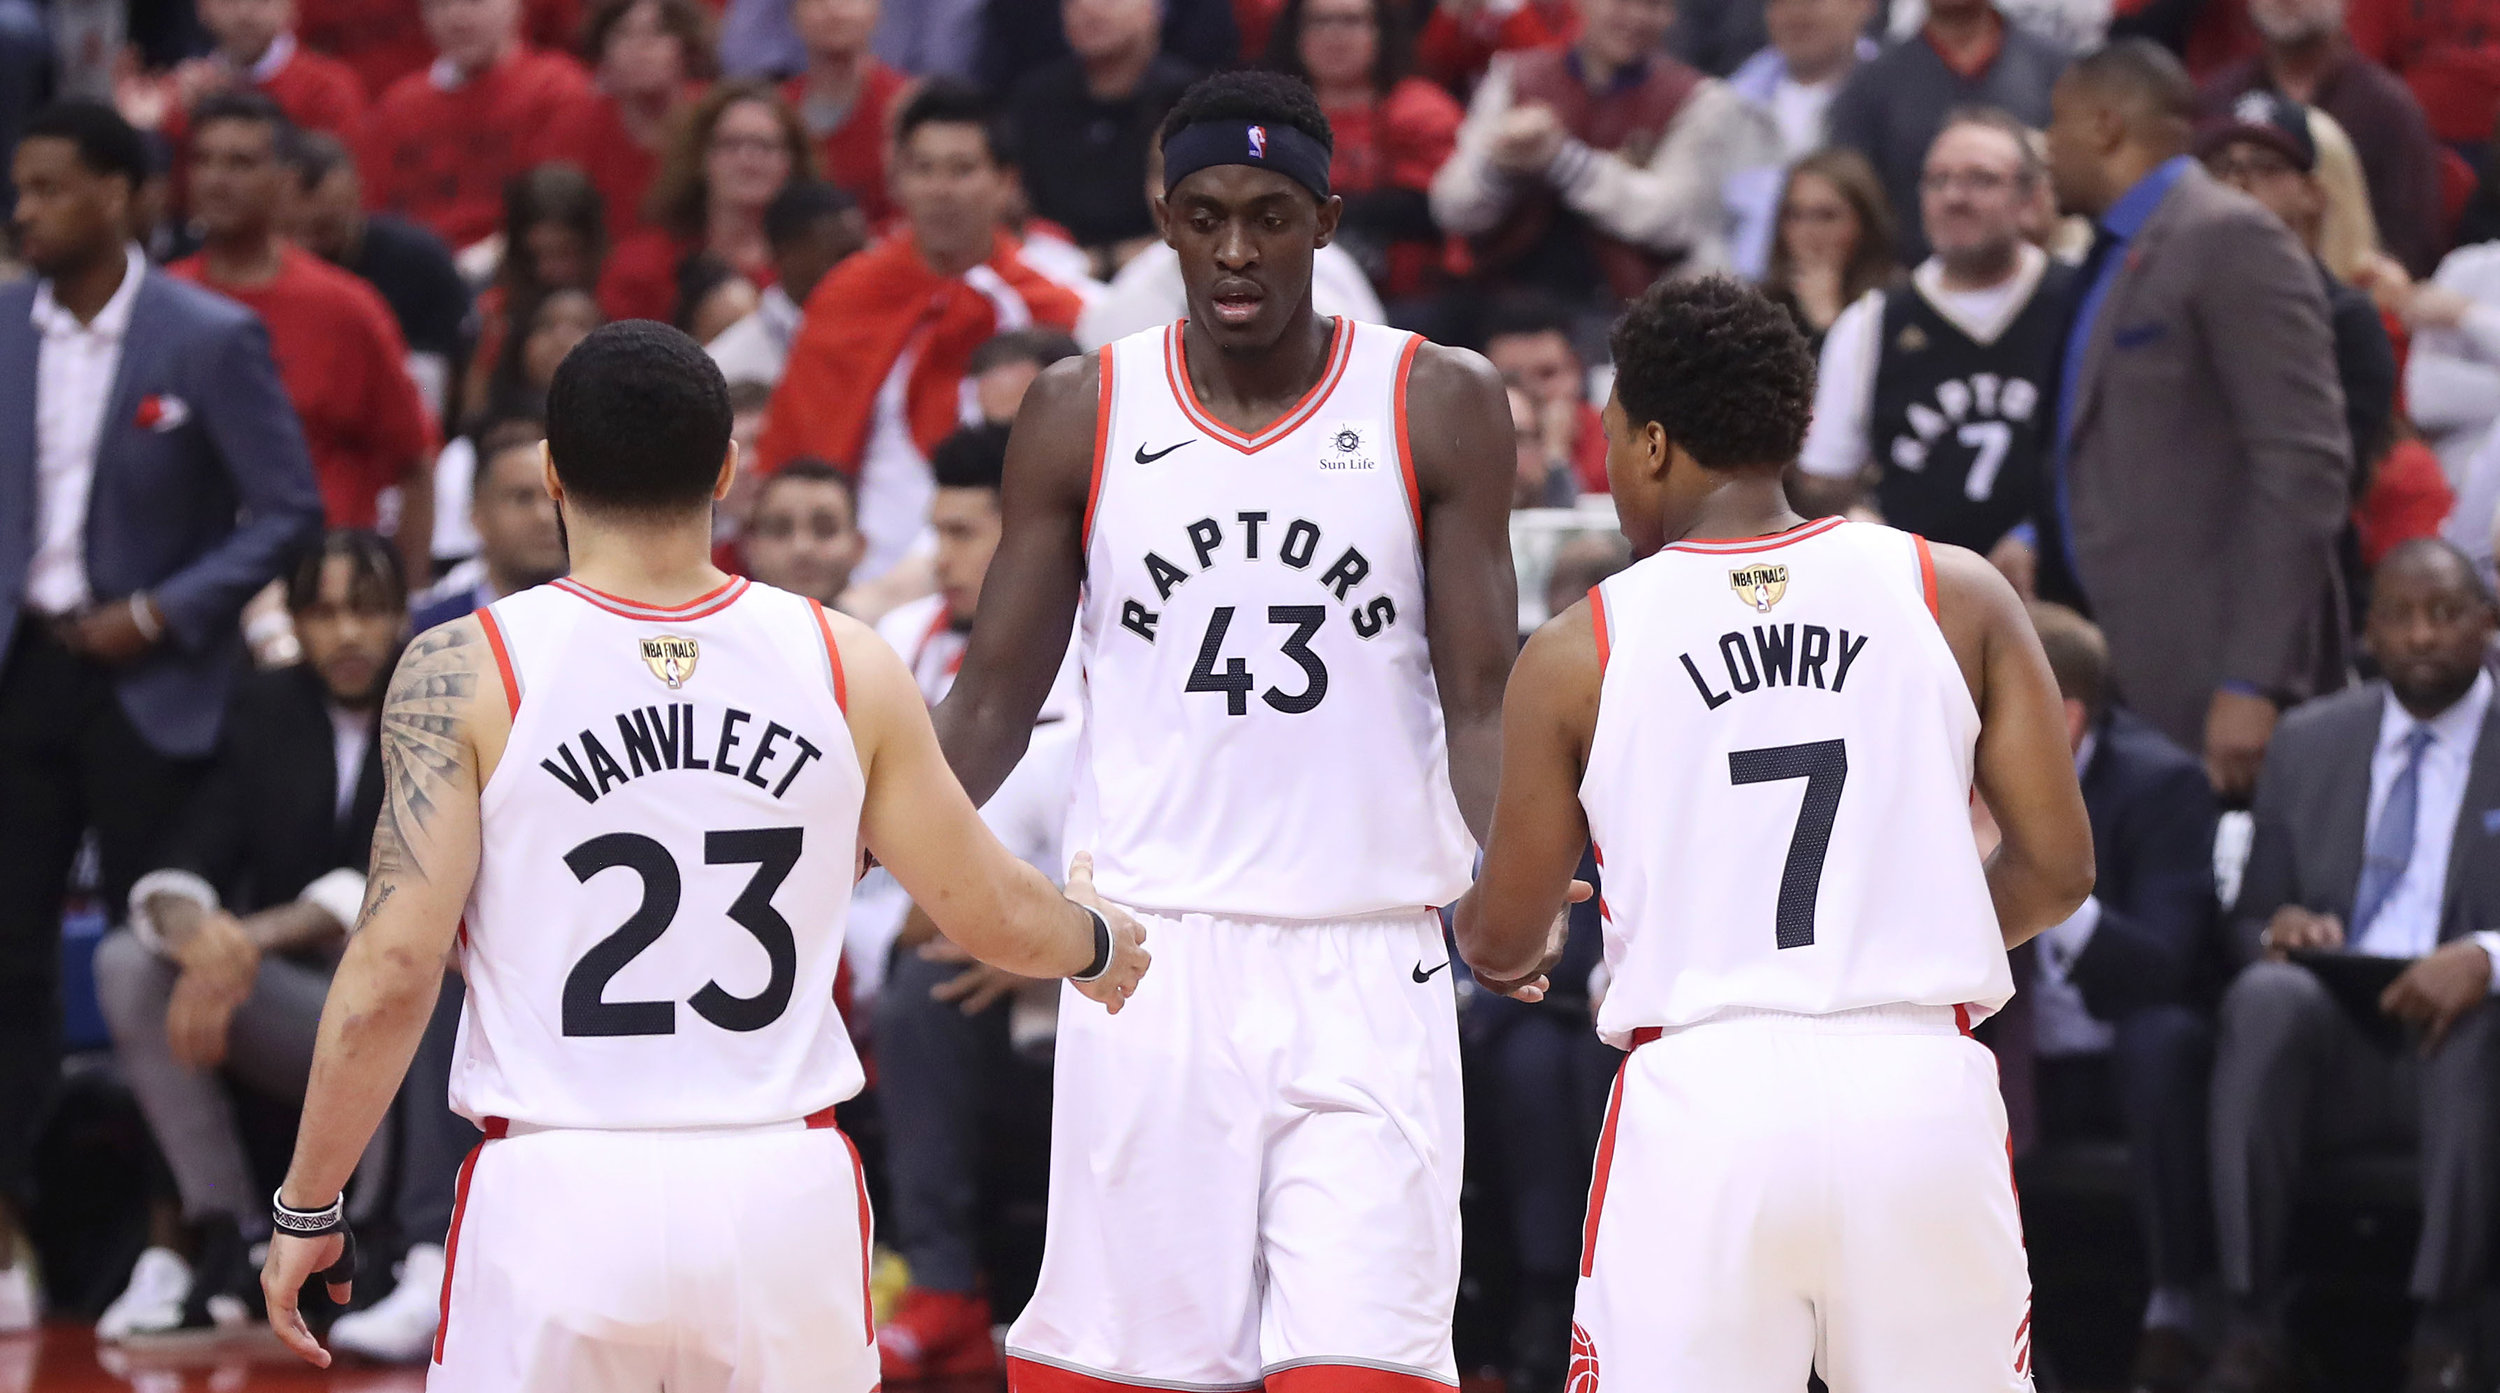 The Toronto Raptors won game 3 convincingly 123-109 over the Golden State Warriors ( Photo by: CBS Sports)